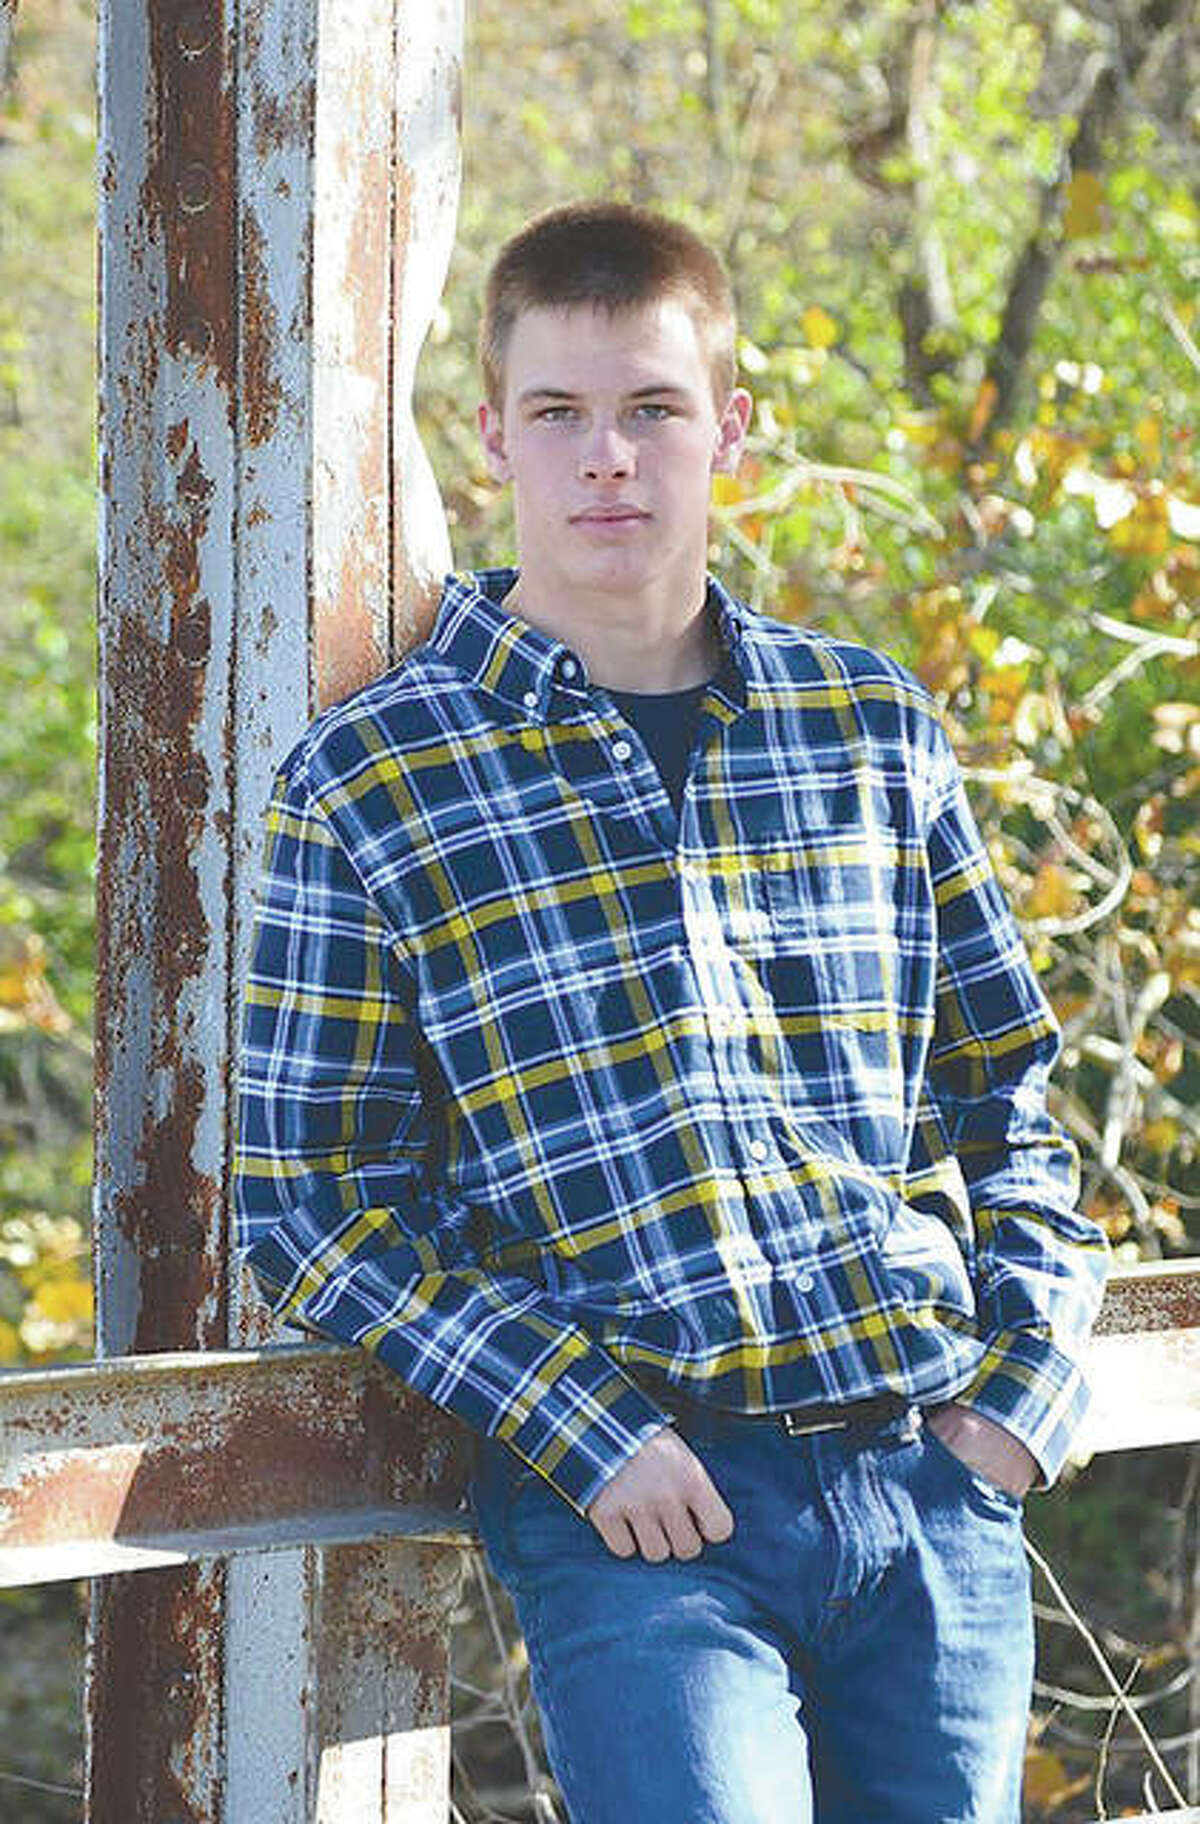 Pittsfield High School student Cody M. Walston shows off some of the plaid attire that was his trademark.